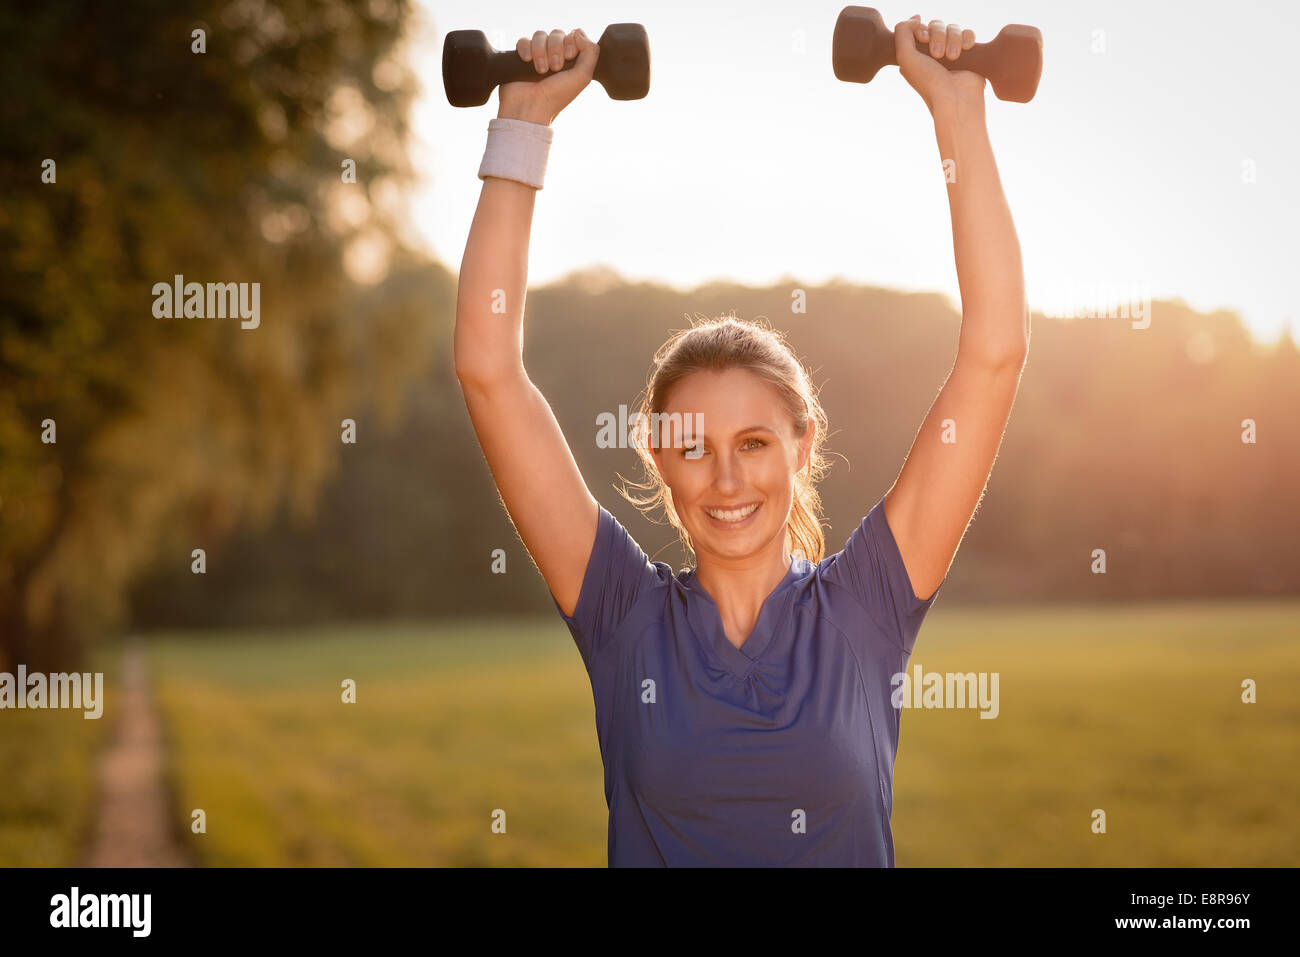 Beautiful young woman working out with dumbbells outdoors in the countryside in evening light looking at the camera - Stock Image